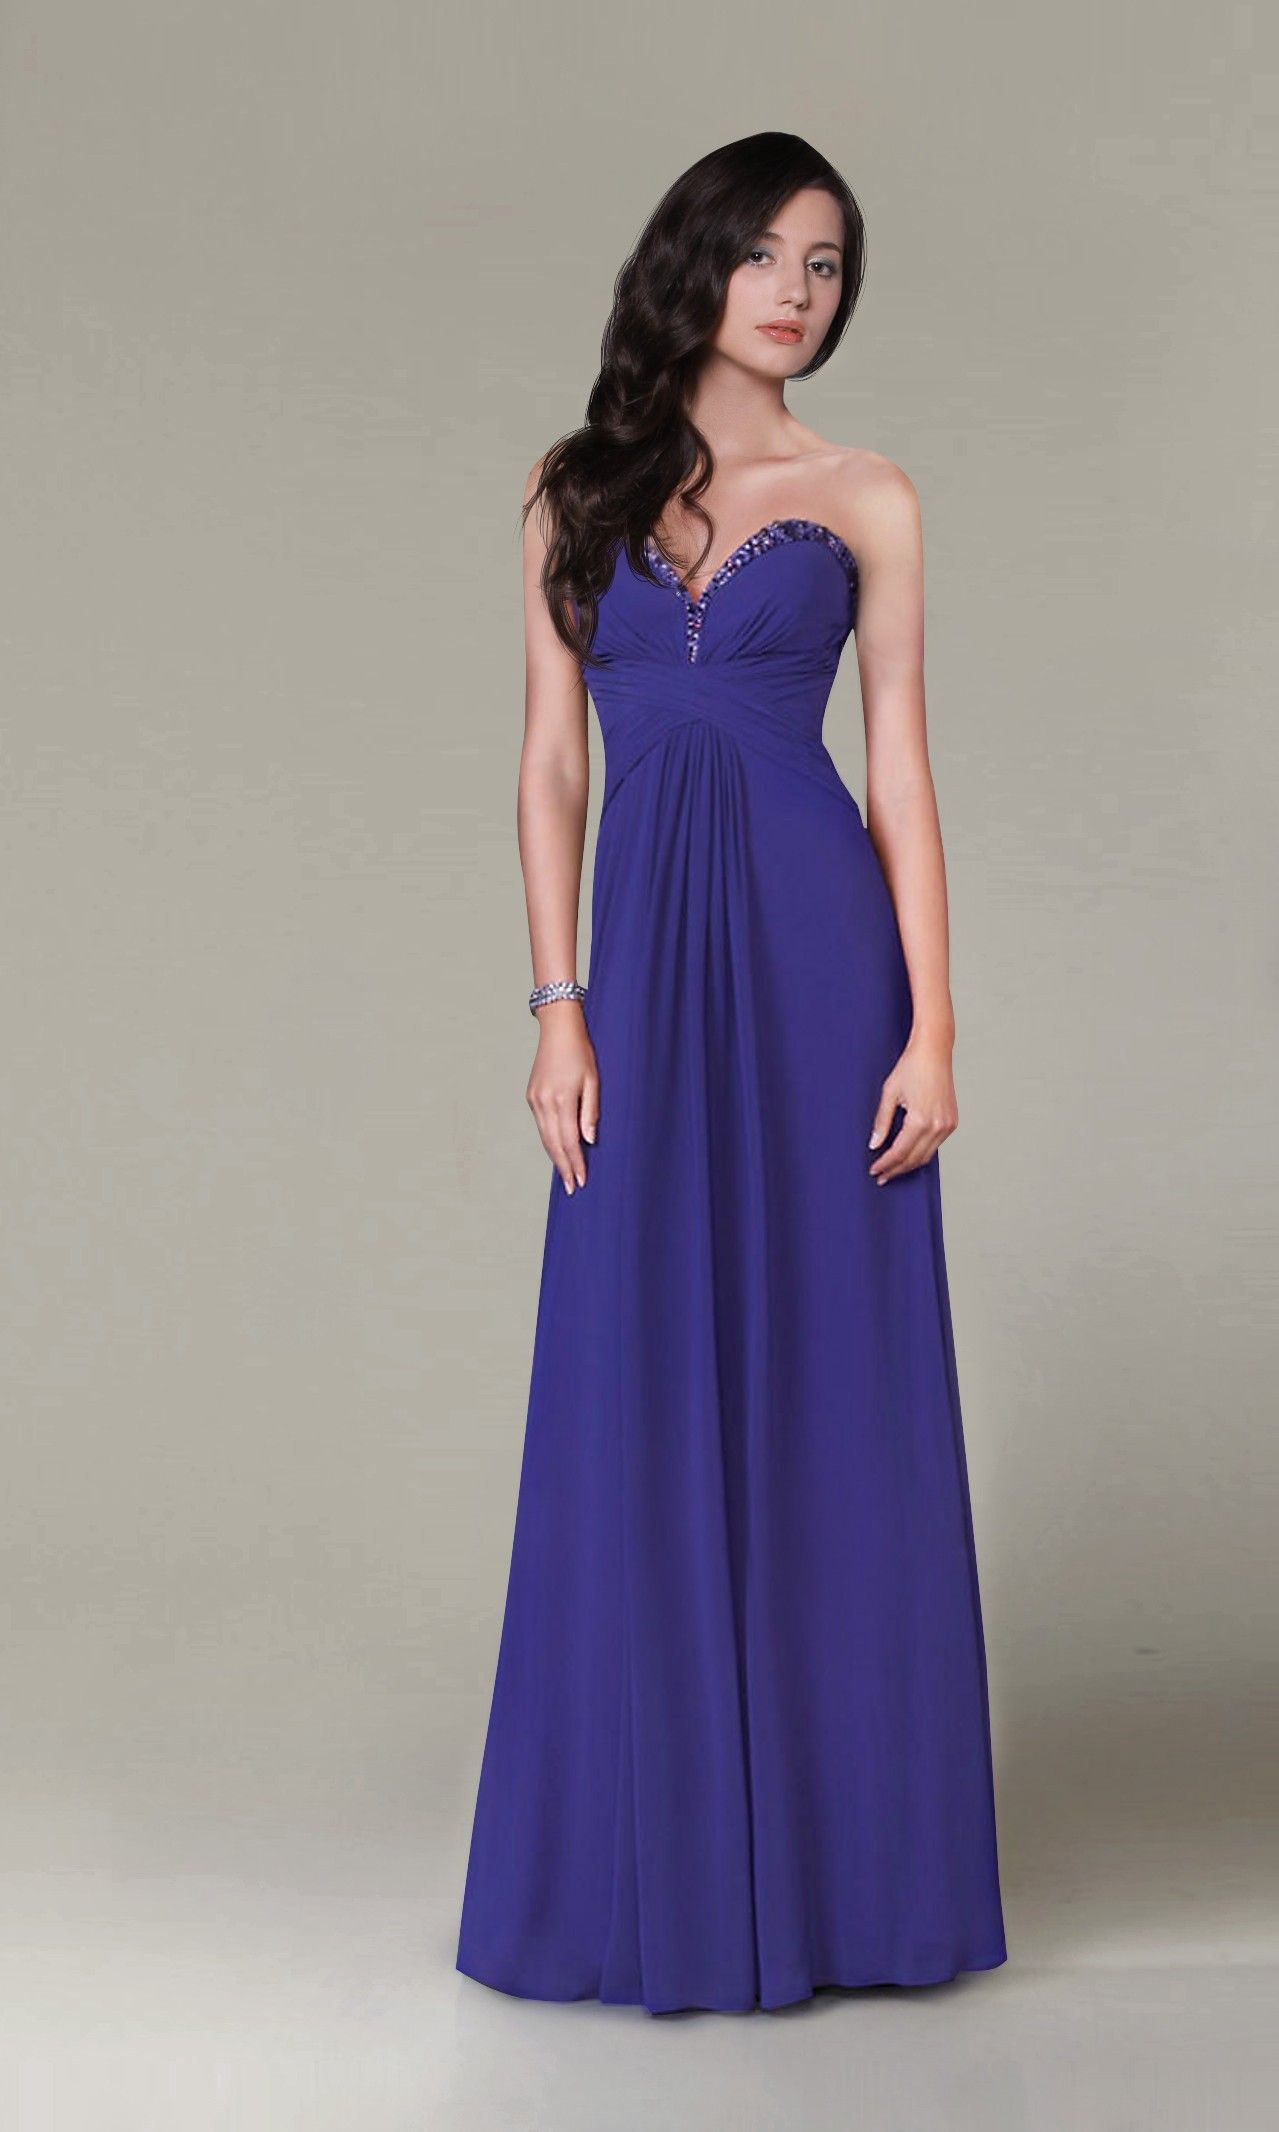 Blue Gown For Wedding Dresses And The Fashion